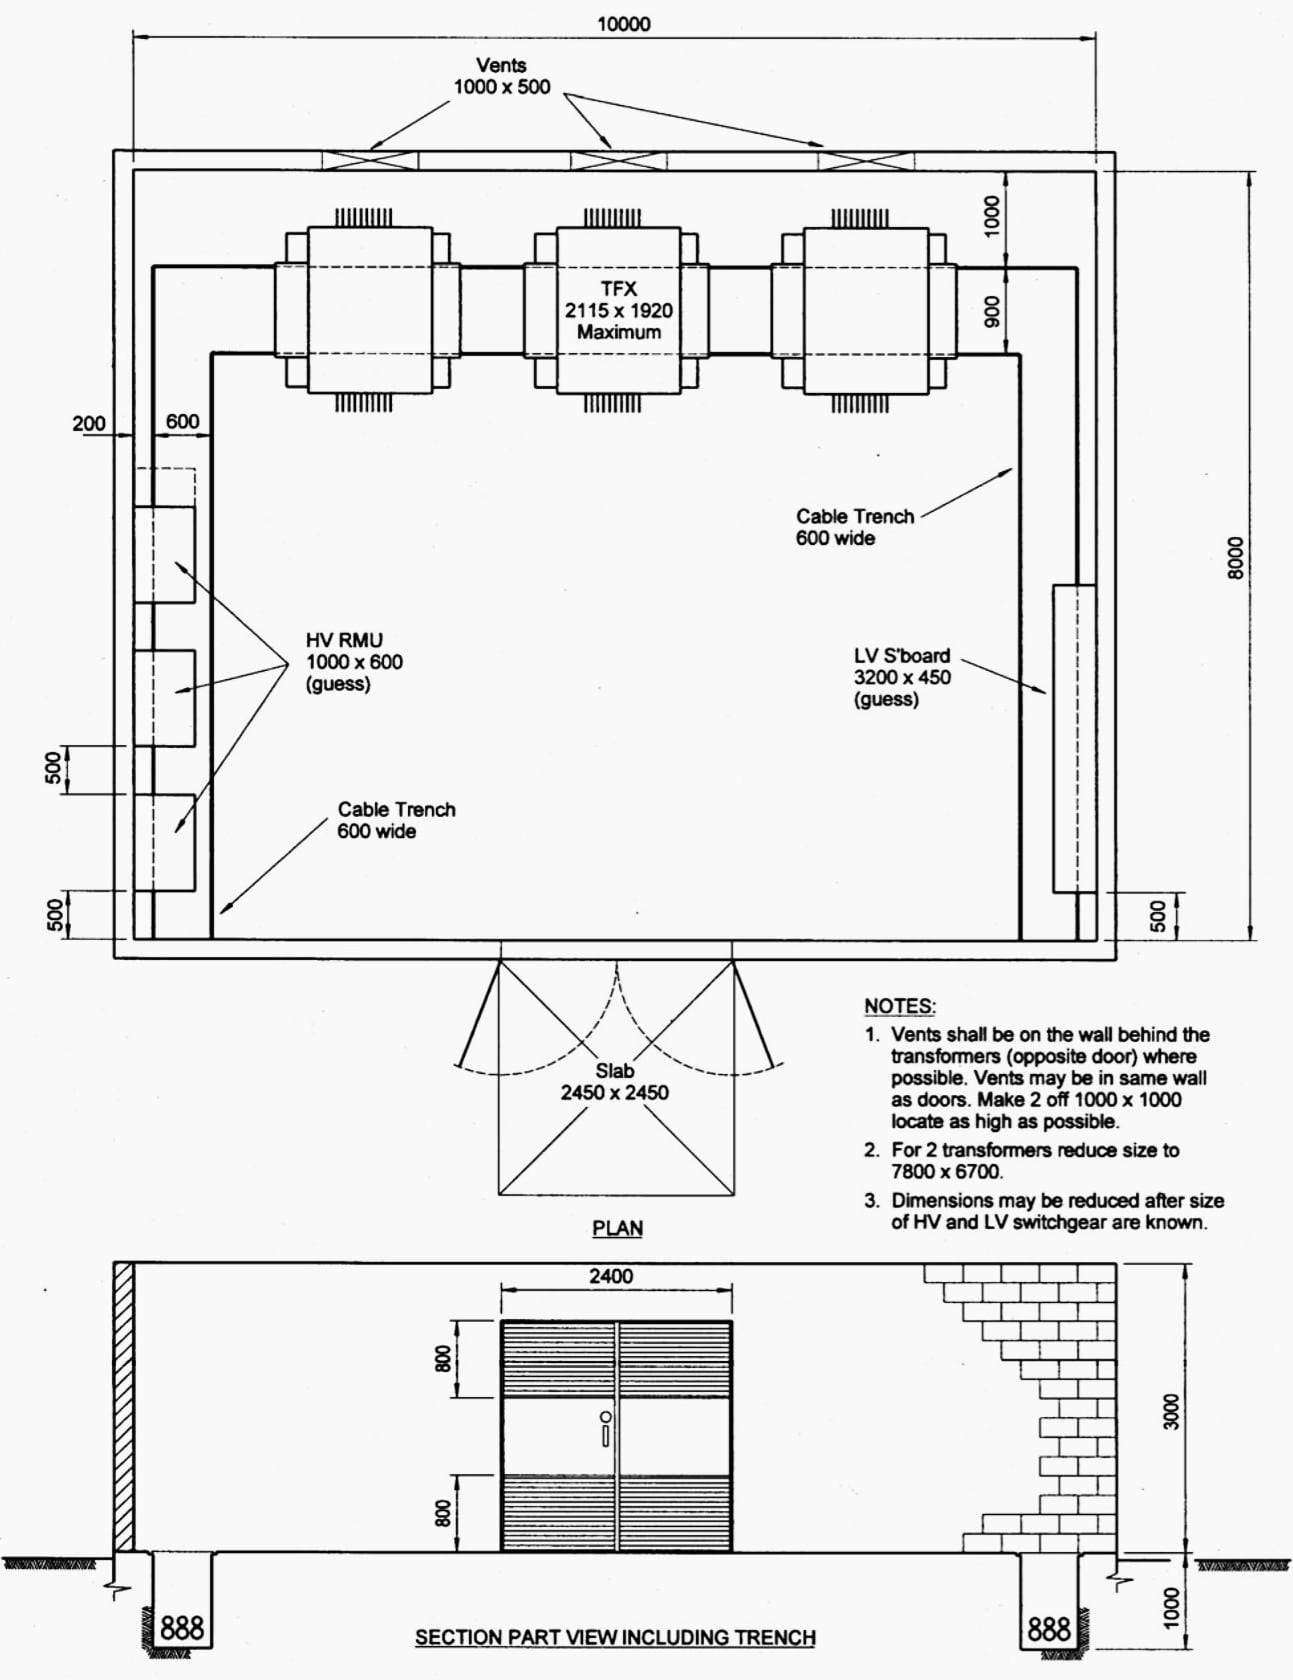 7 Typical Layout Designs Of 11kv Indoor Distribution Substation